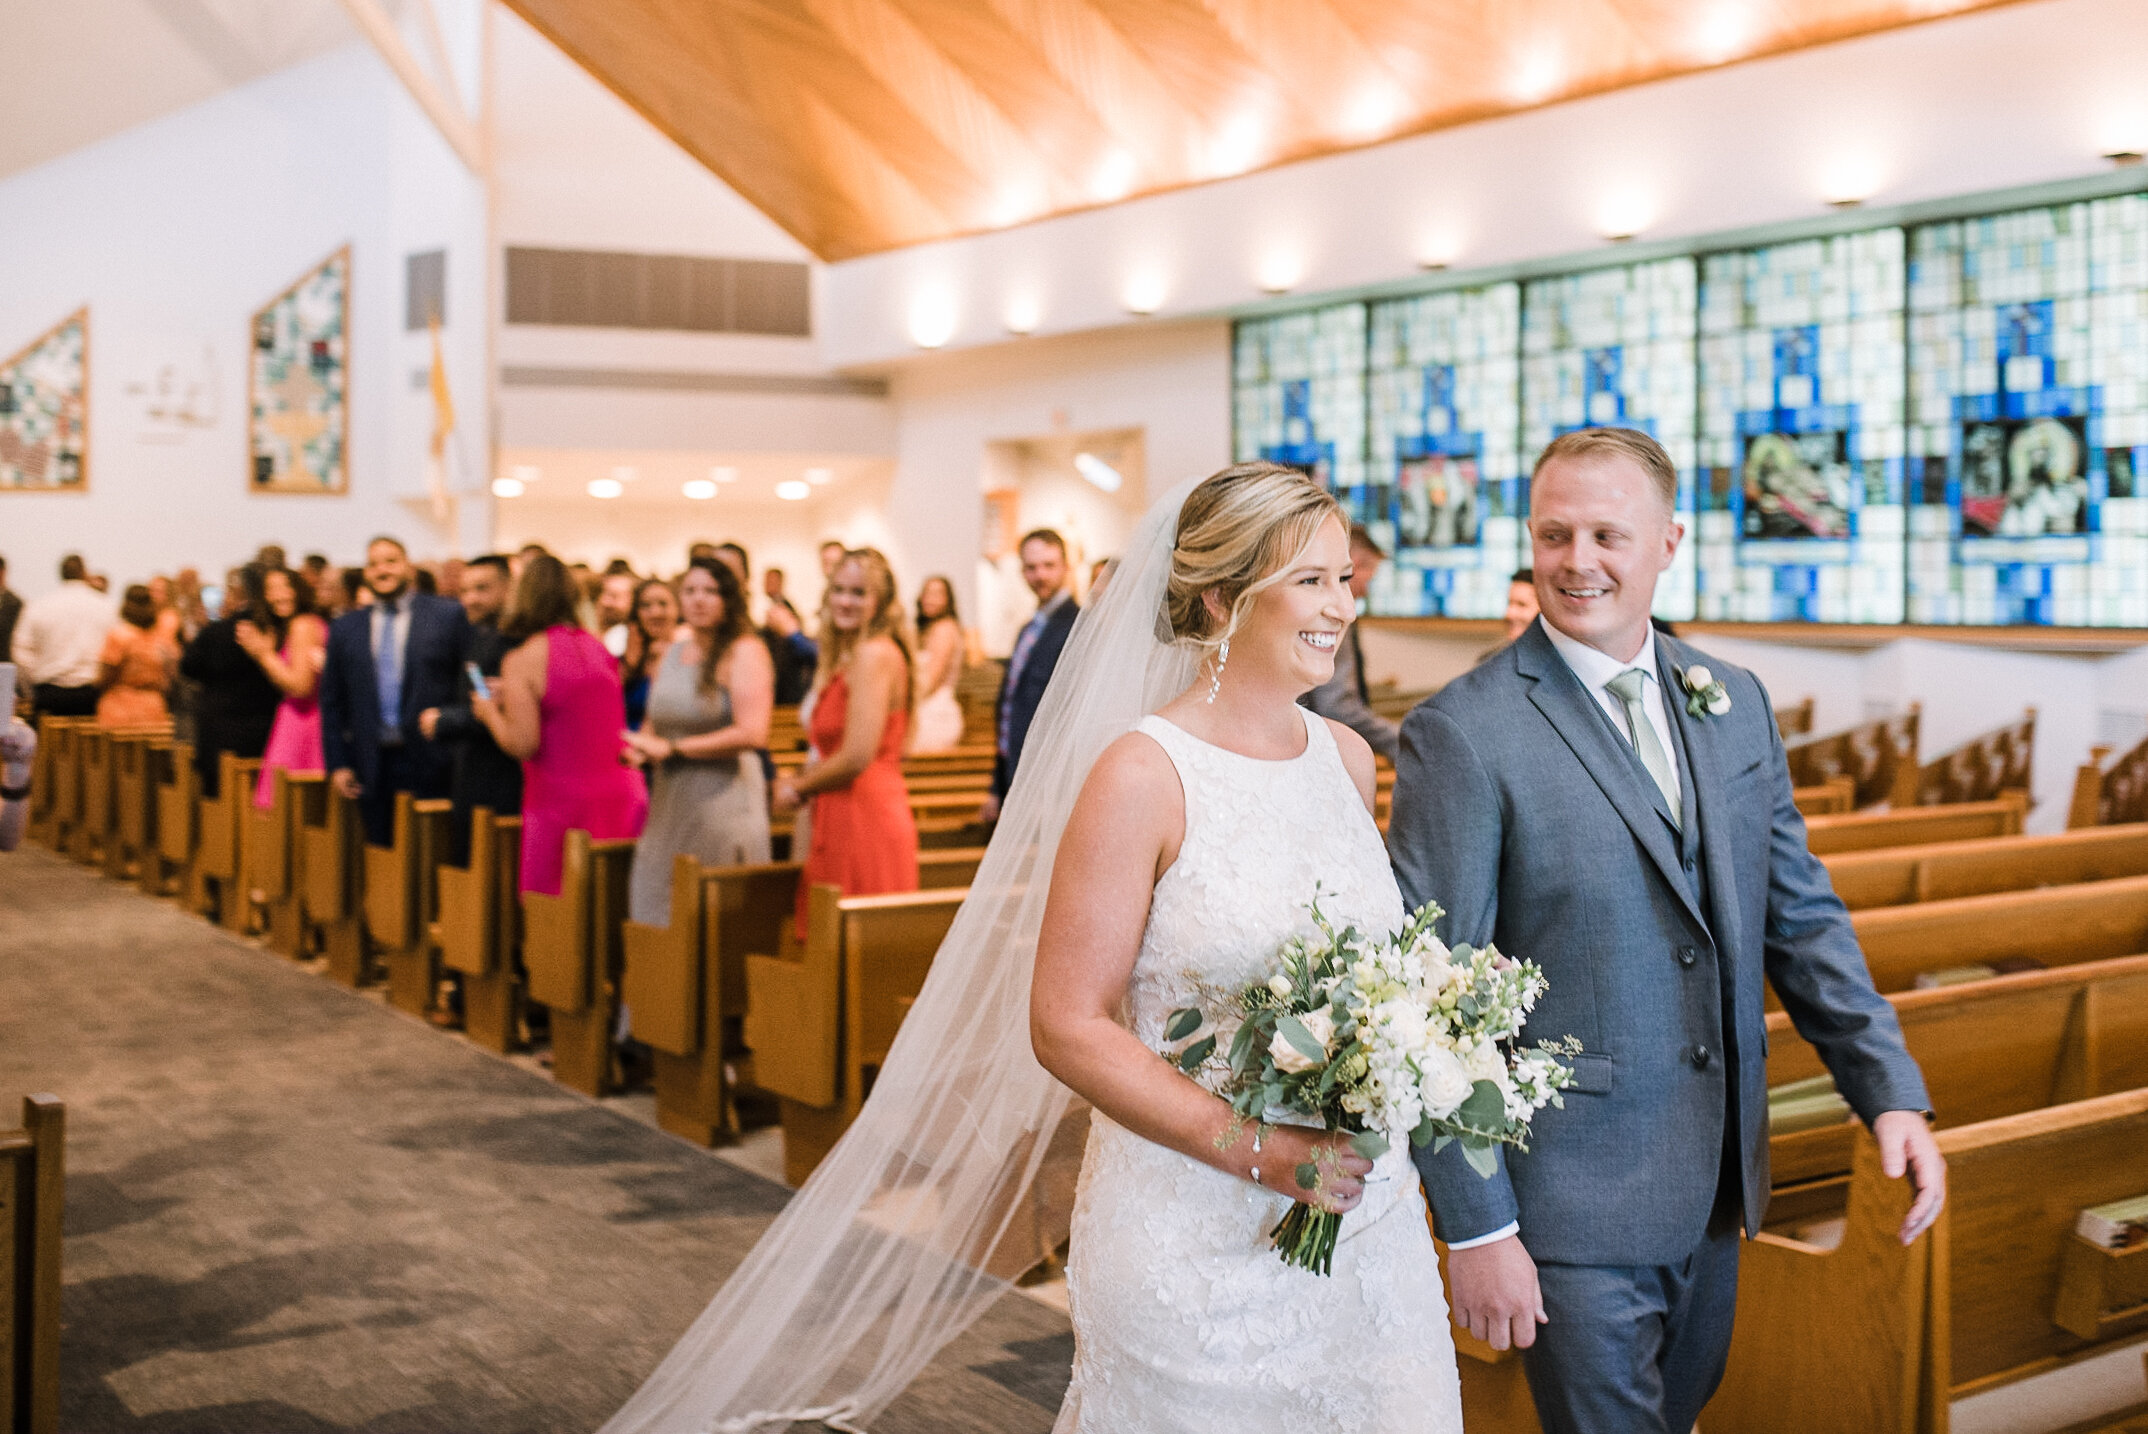 Bride and groom smiling as they walk down the aisle at St. Joseph Catholic Church